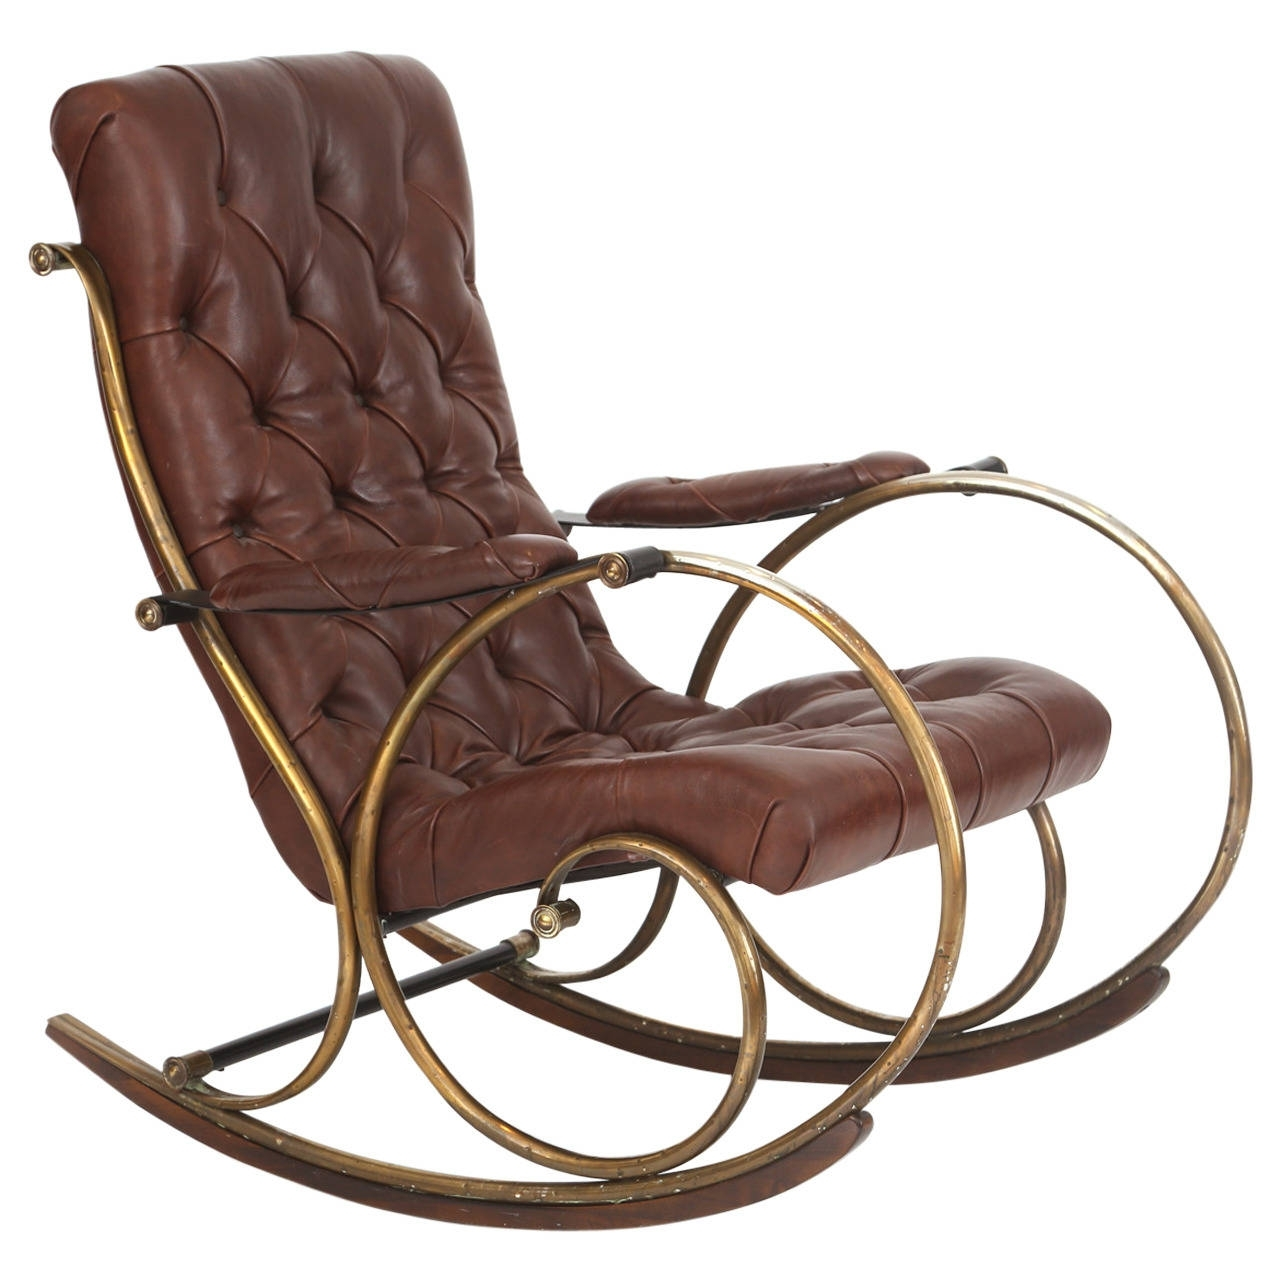 Patio Wooden Rocking Chairs With Preferred Leather Brass And Wood Rocking Chairwoodard For Sale At 1stdibs (View 9 of 15)